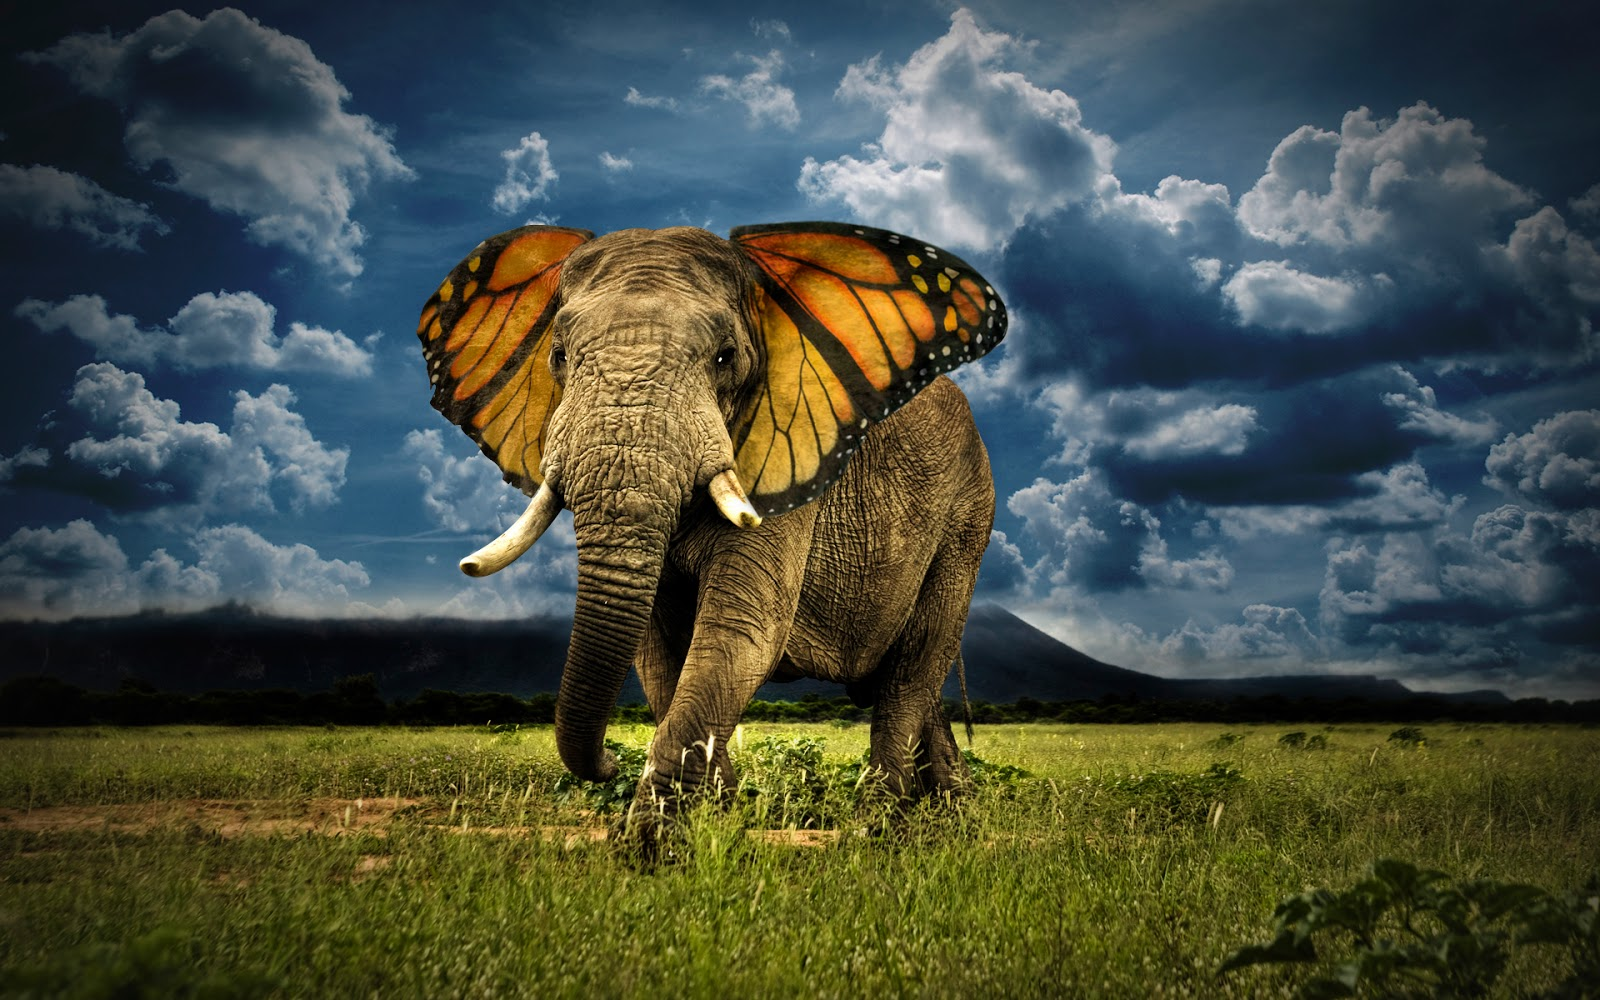 Cute Baby Dolphin Wallpaper Creative Photo Manipulation Elephant With Butterfly